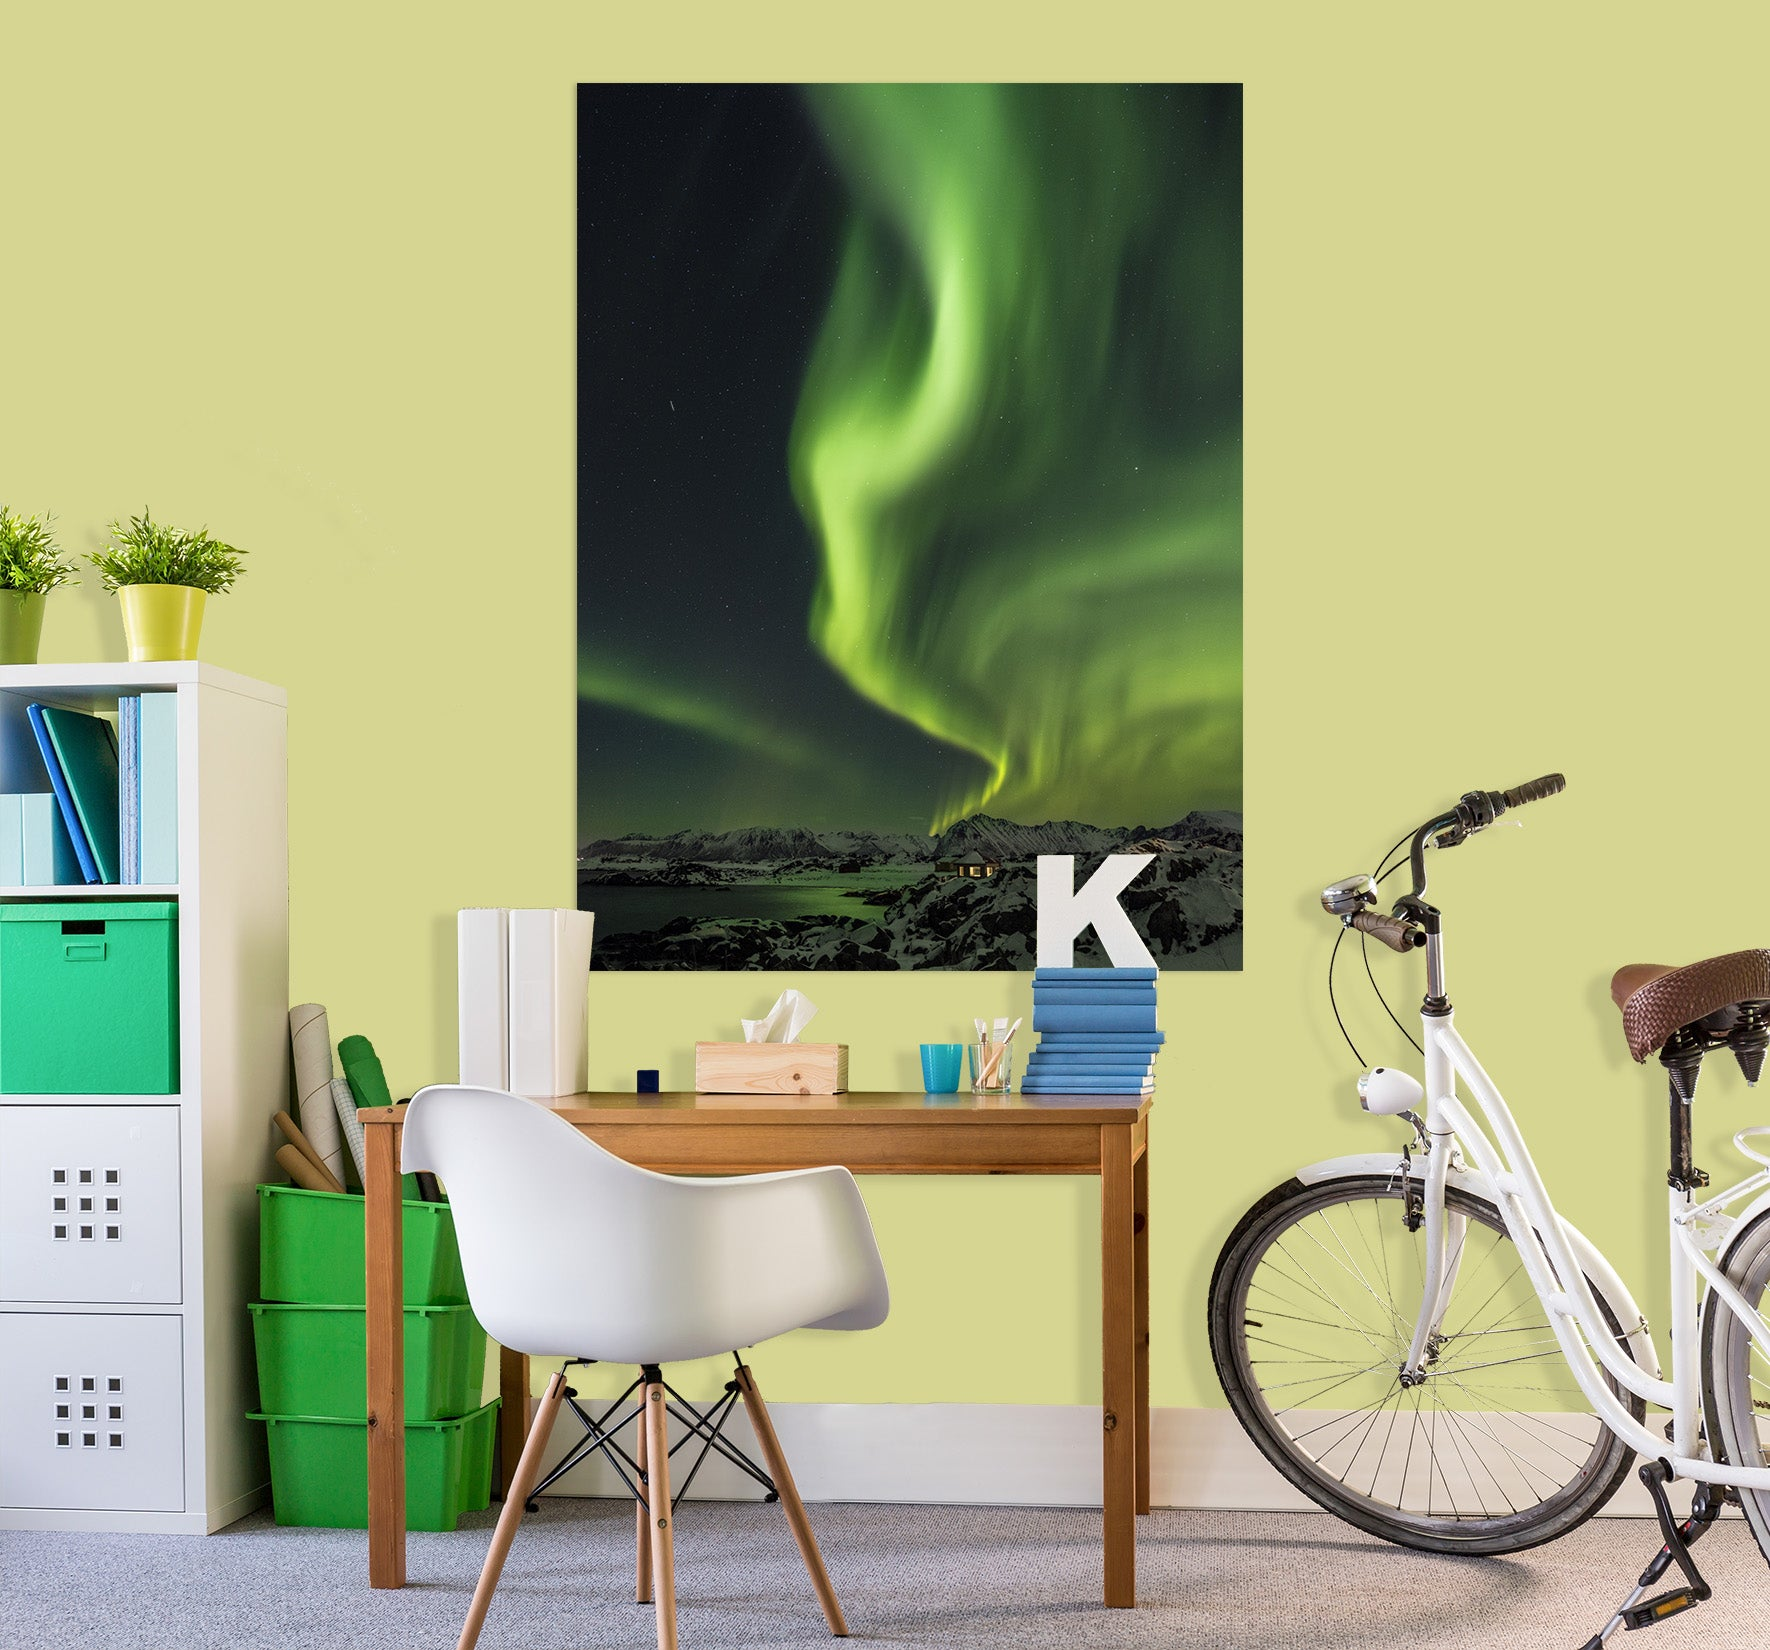 3D Green Light 231 Marco Carmassi Wall Sticker